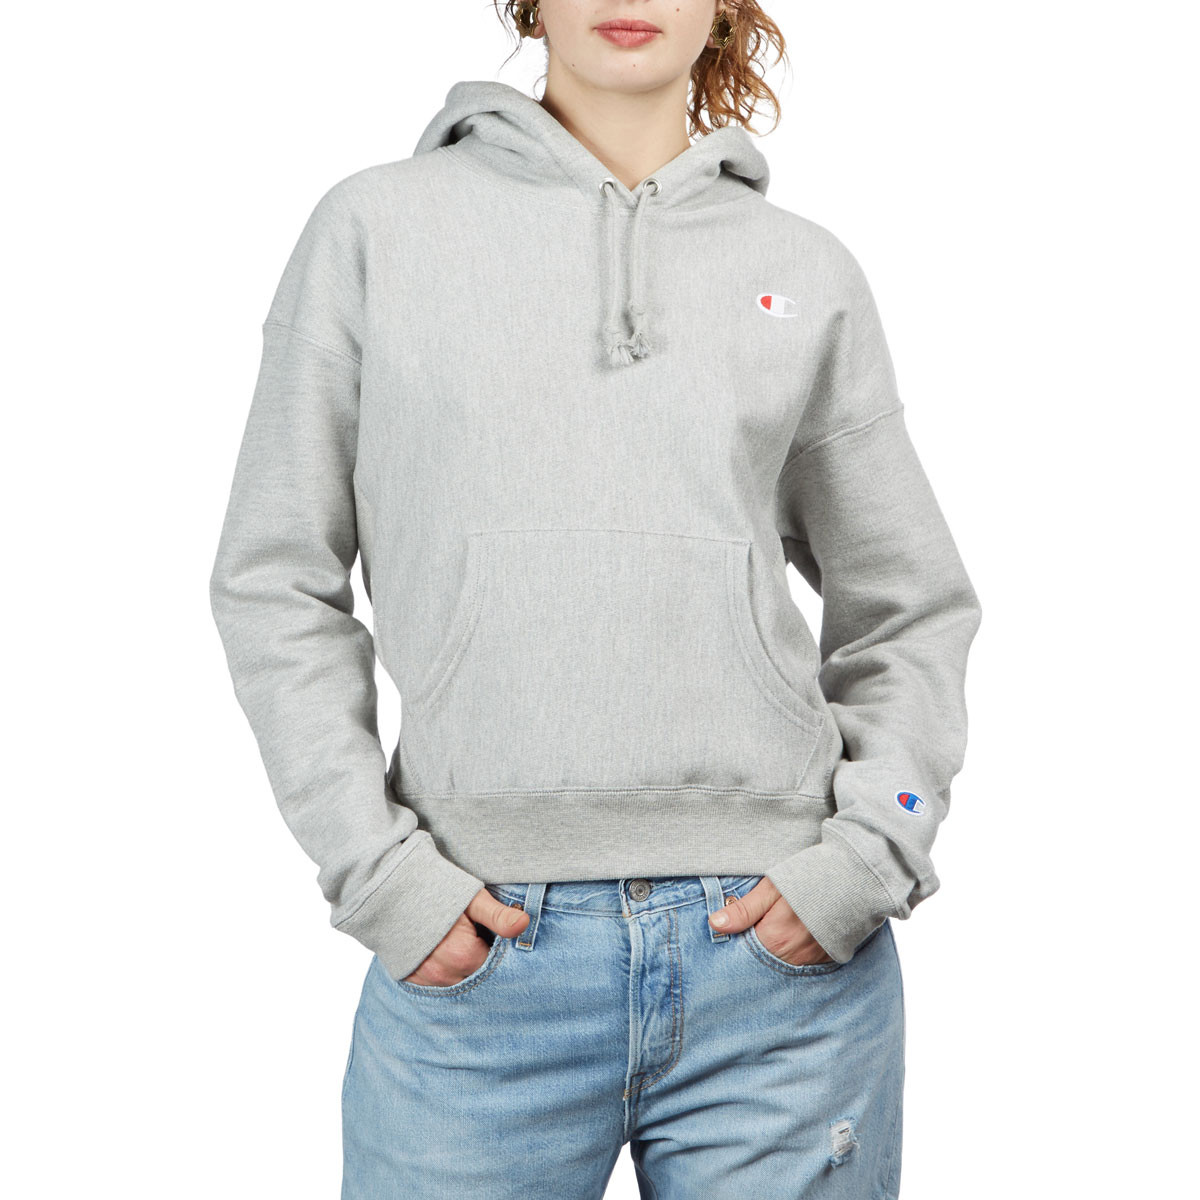 8c90a682d5e6 Champion Womens Reverse Weave Hoodie - Oxford Grey